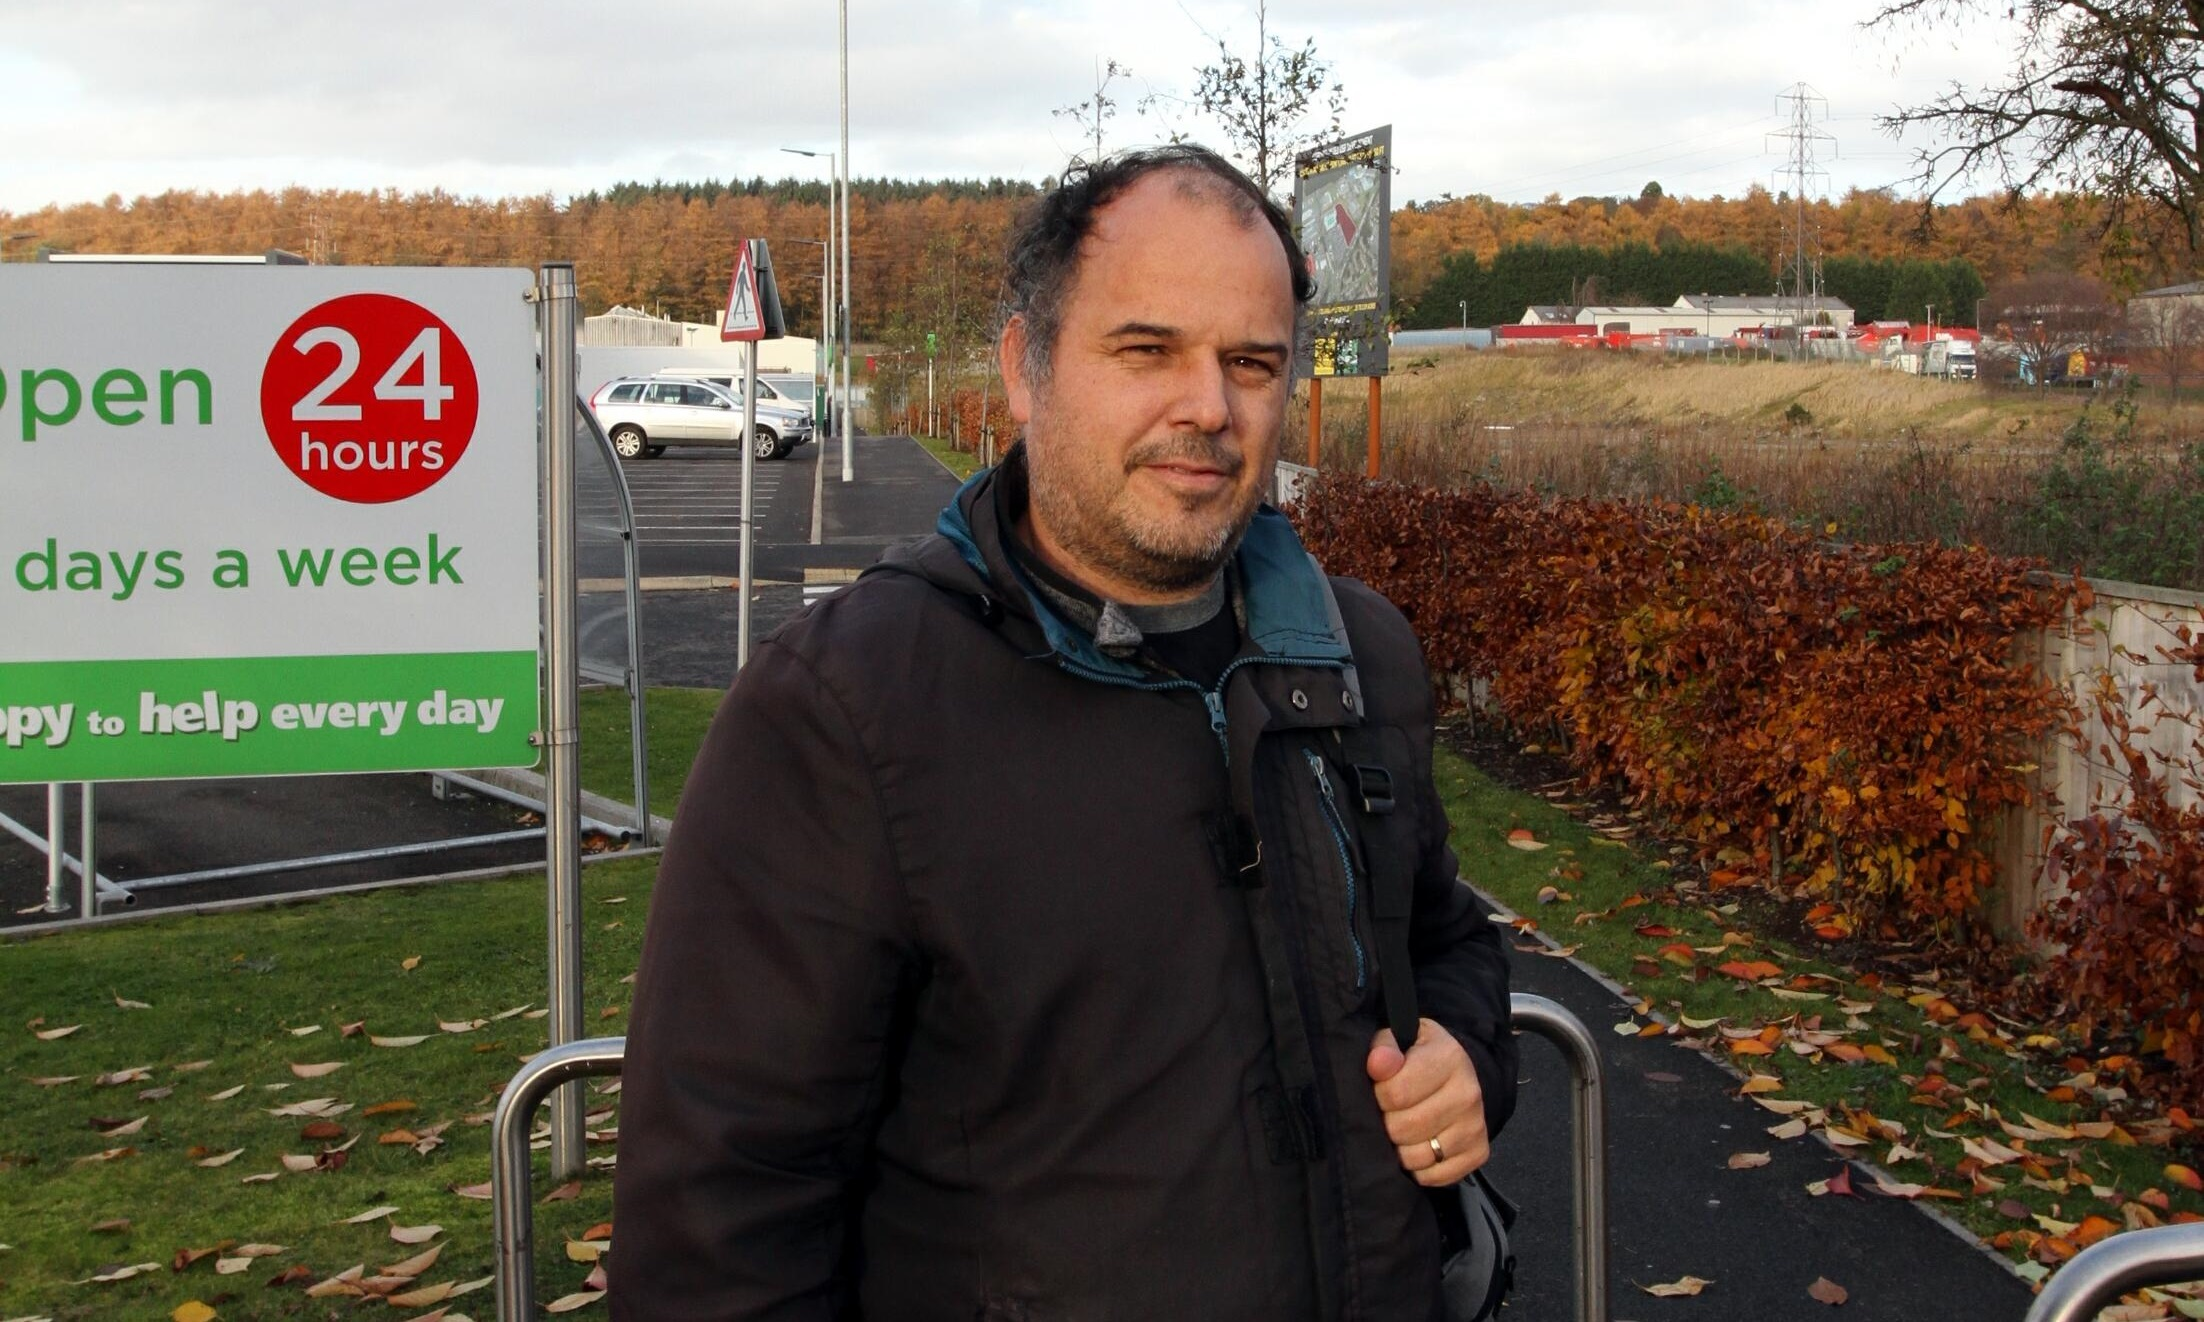 Iain Hendry near the site of the planned store.